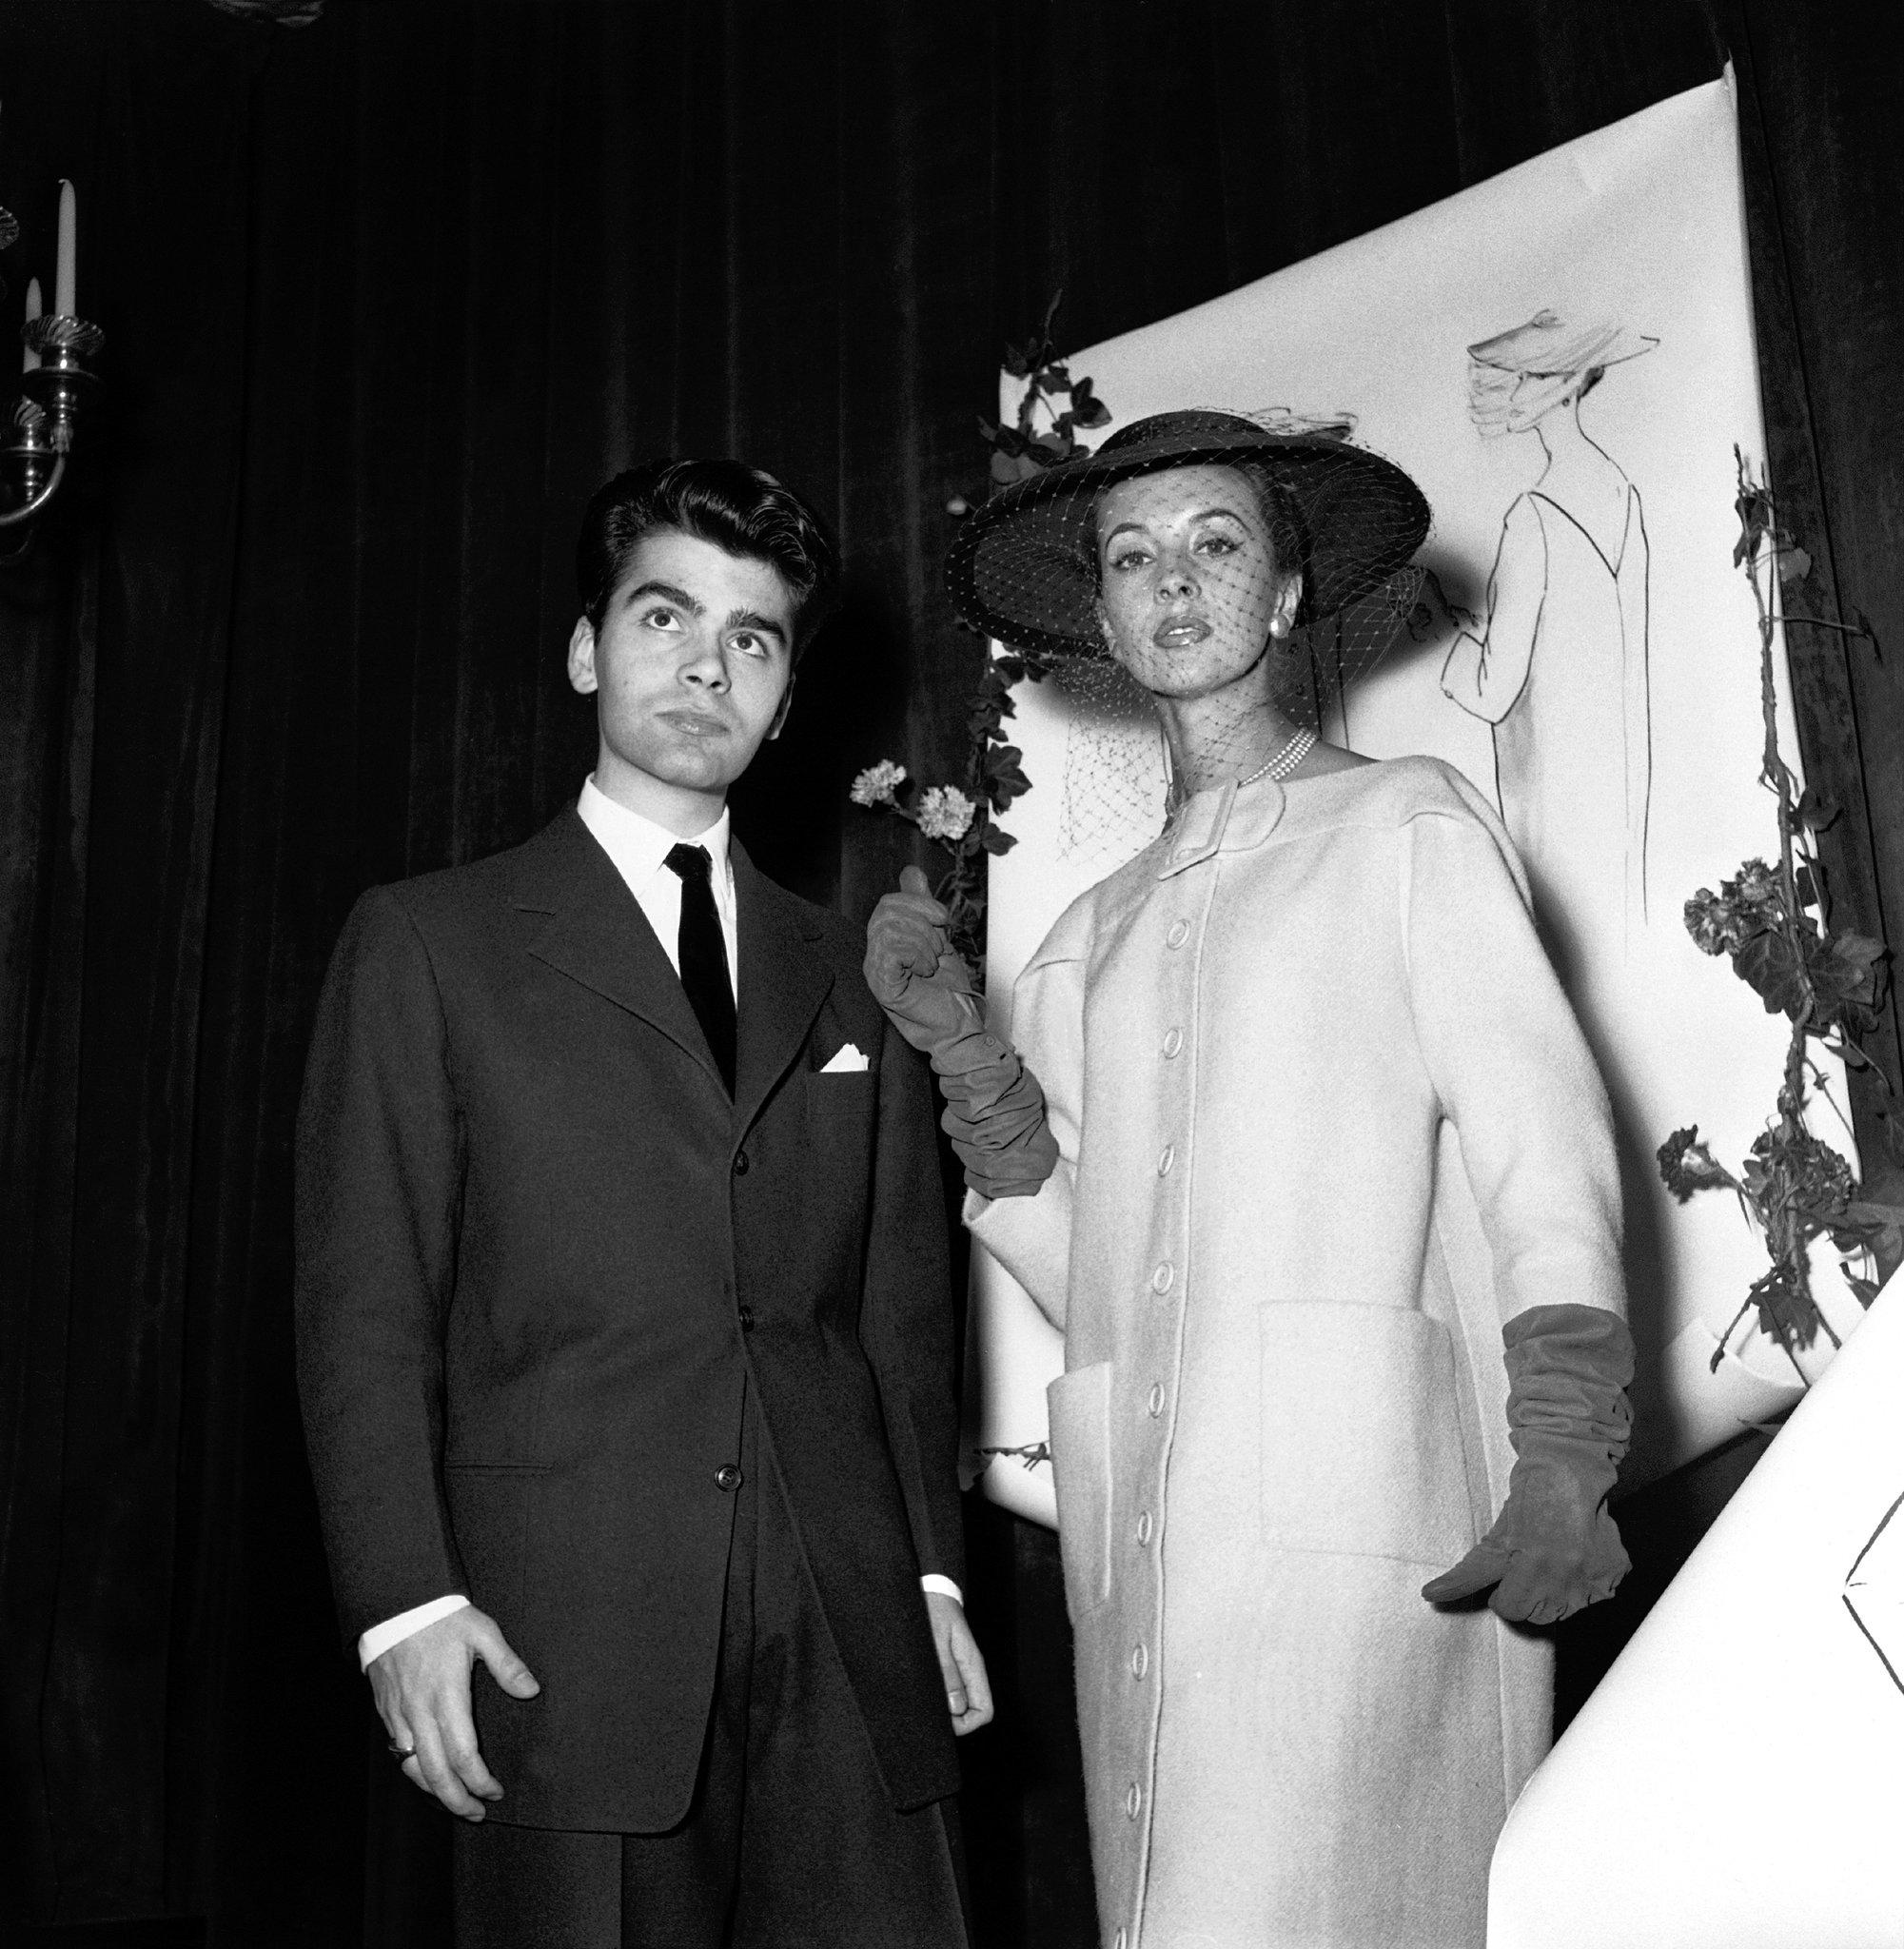 Winning the coat division at a Parisian design competition at approx. age 16; image via The New York Times.